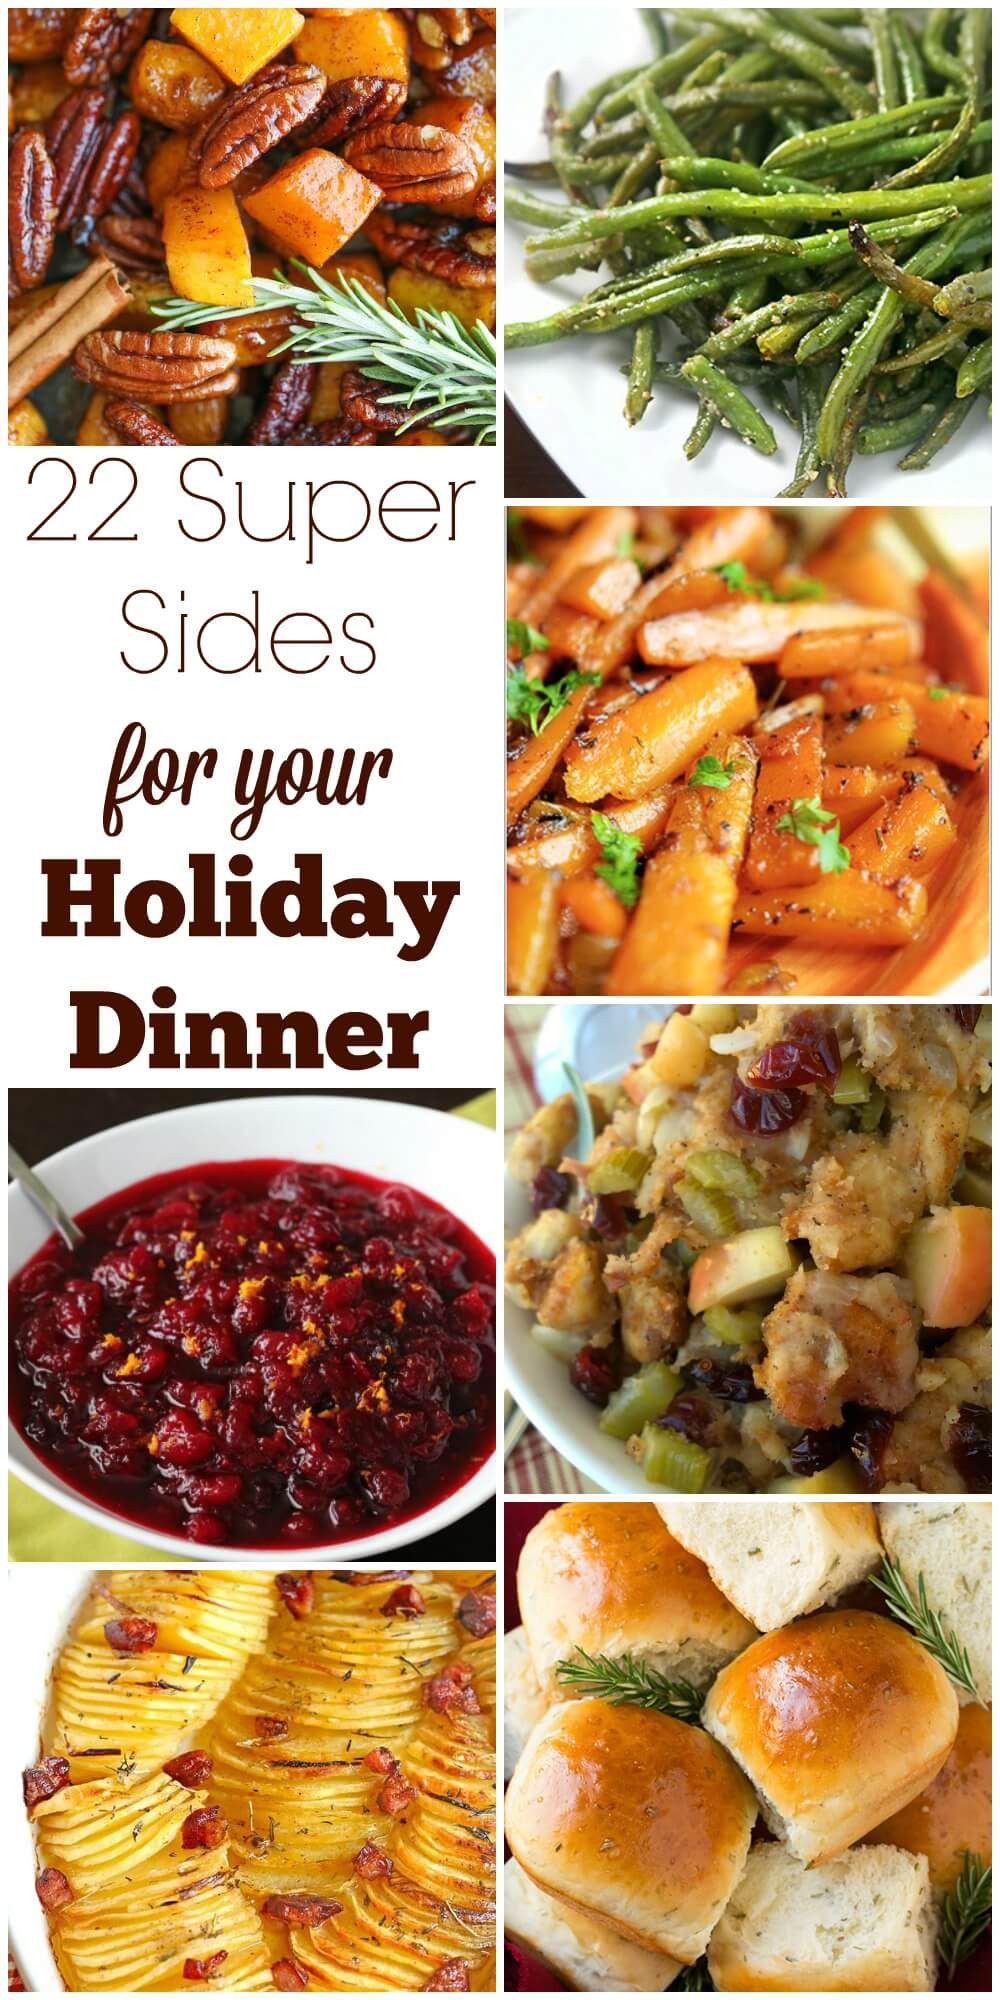 Thanksgiving Dinner Sides  22 Super Sides for Your Holiday Dinner